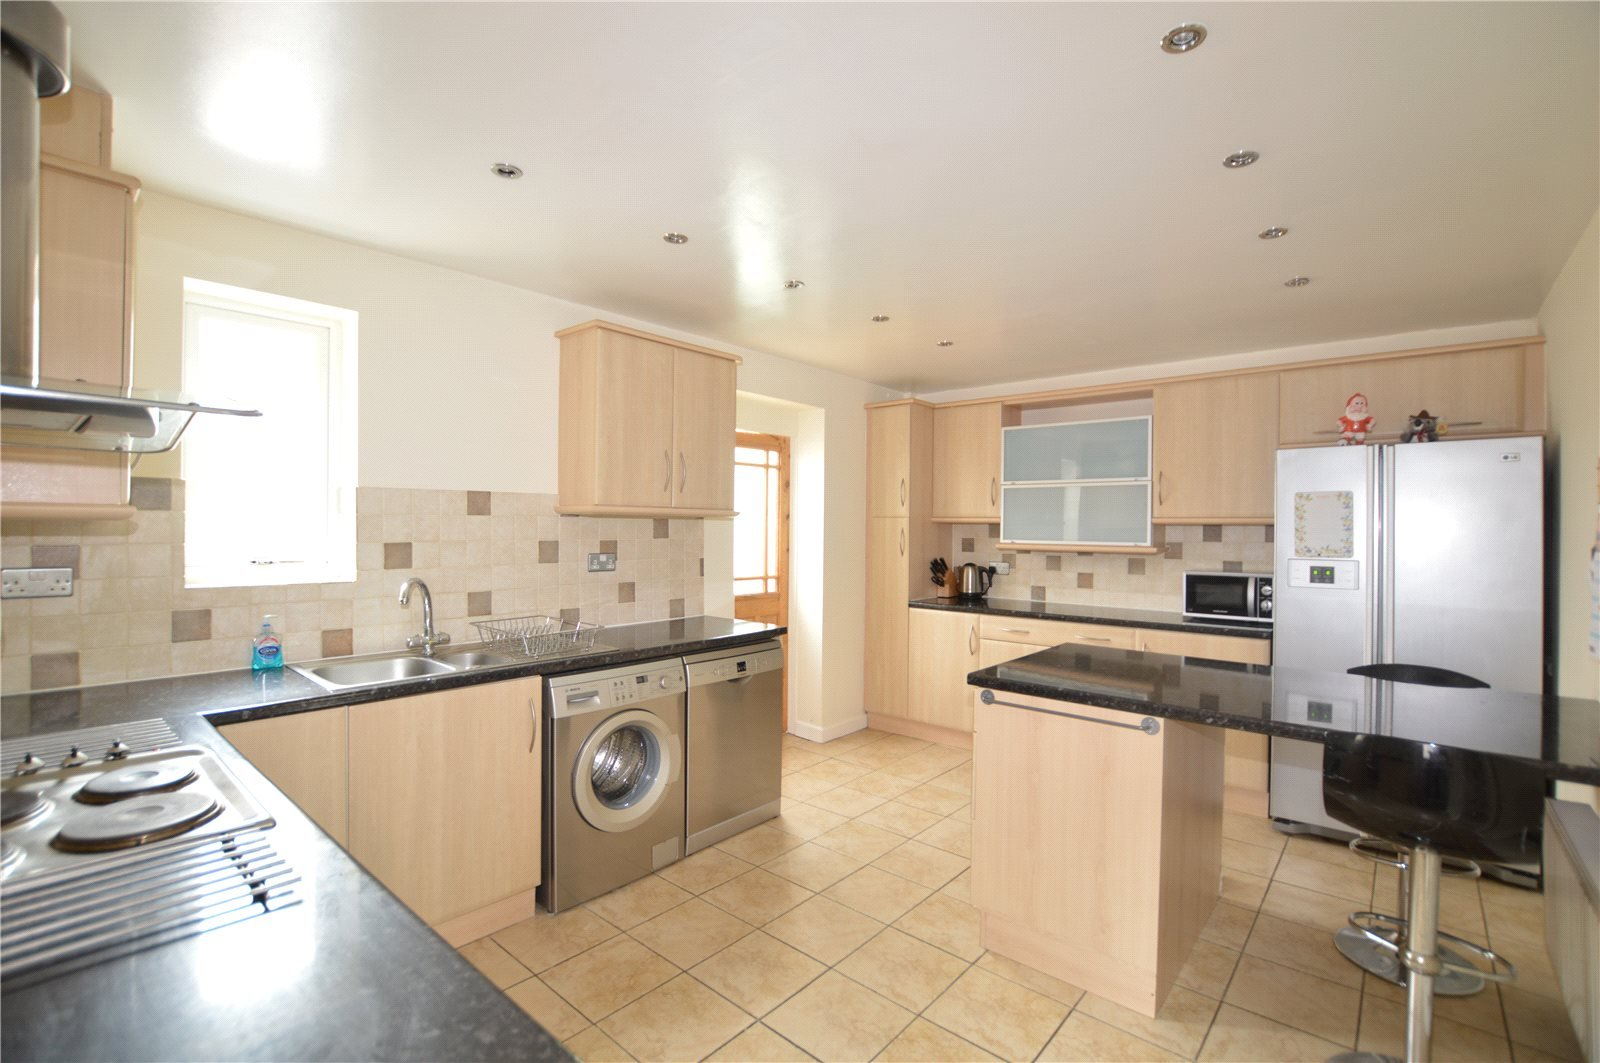 property for sale in Morley, Kitchen area, fitted and neutral